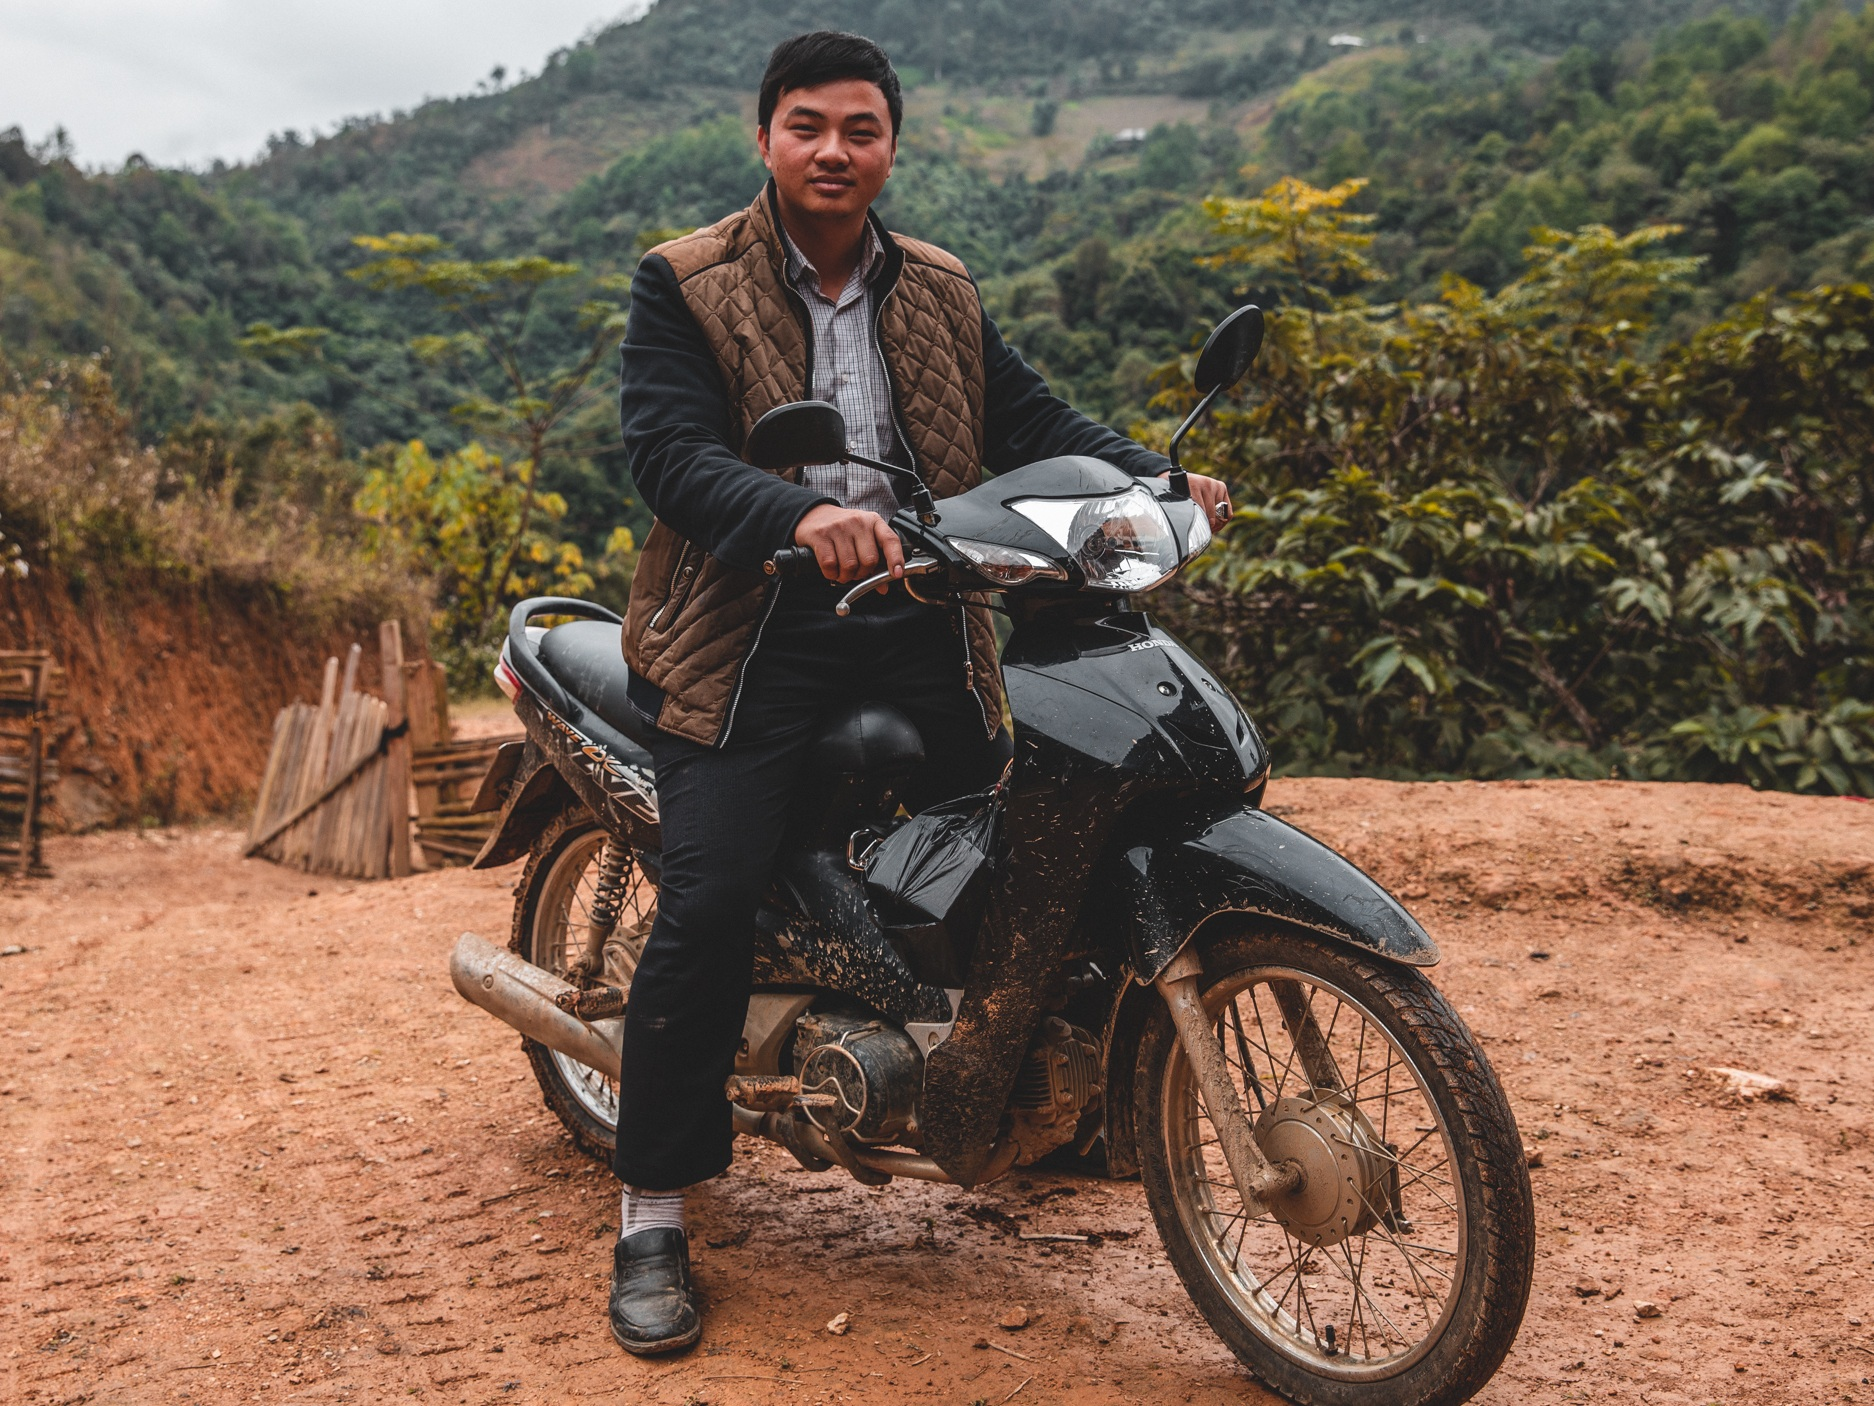 """""""The motorcycle you gave has allowed me to go to further unreached villages with the gospel. Thank you so much."""" - Pastor Minh 